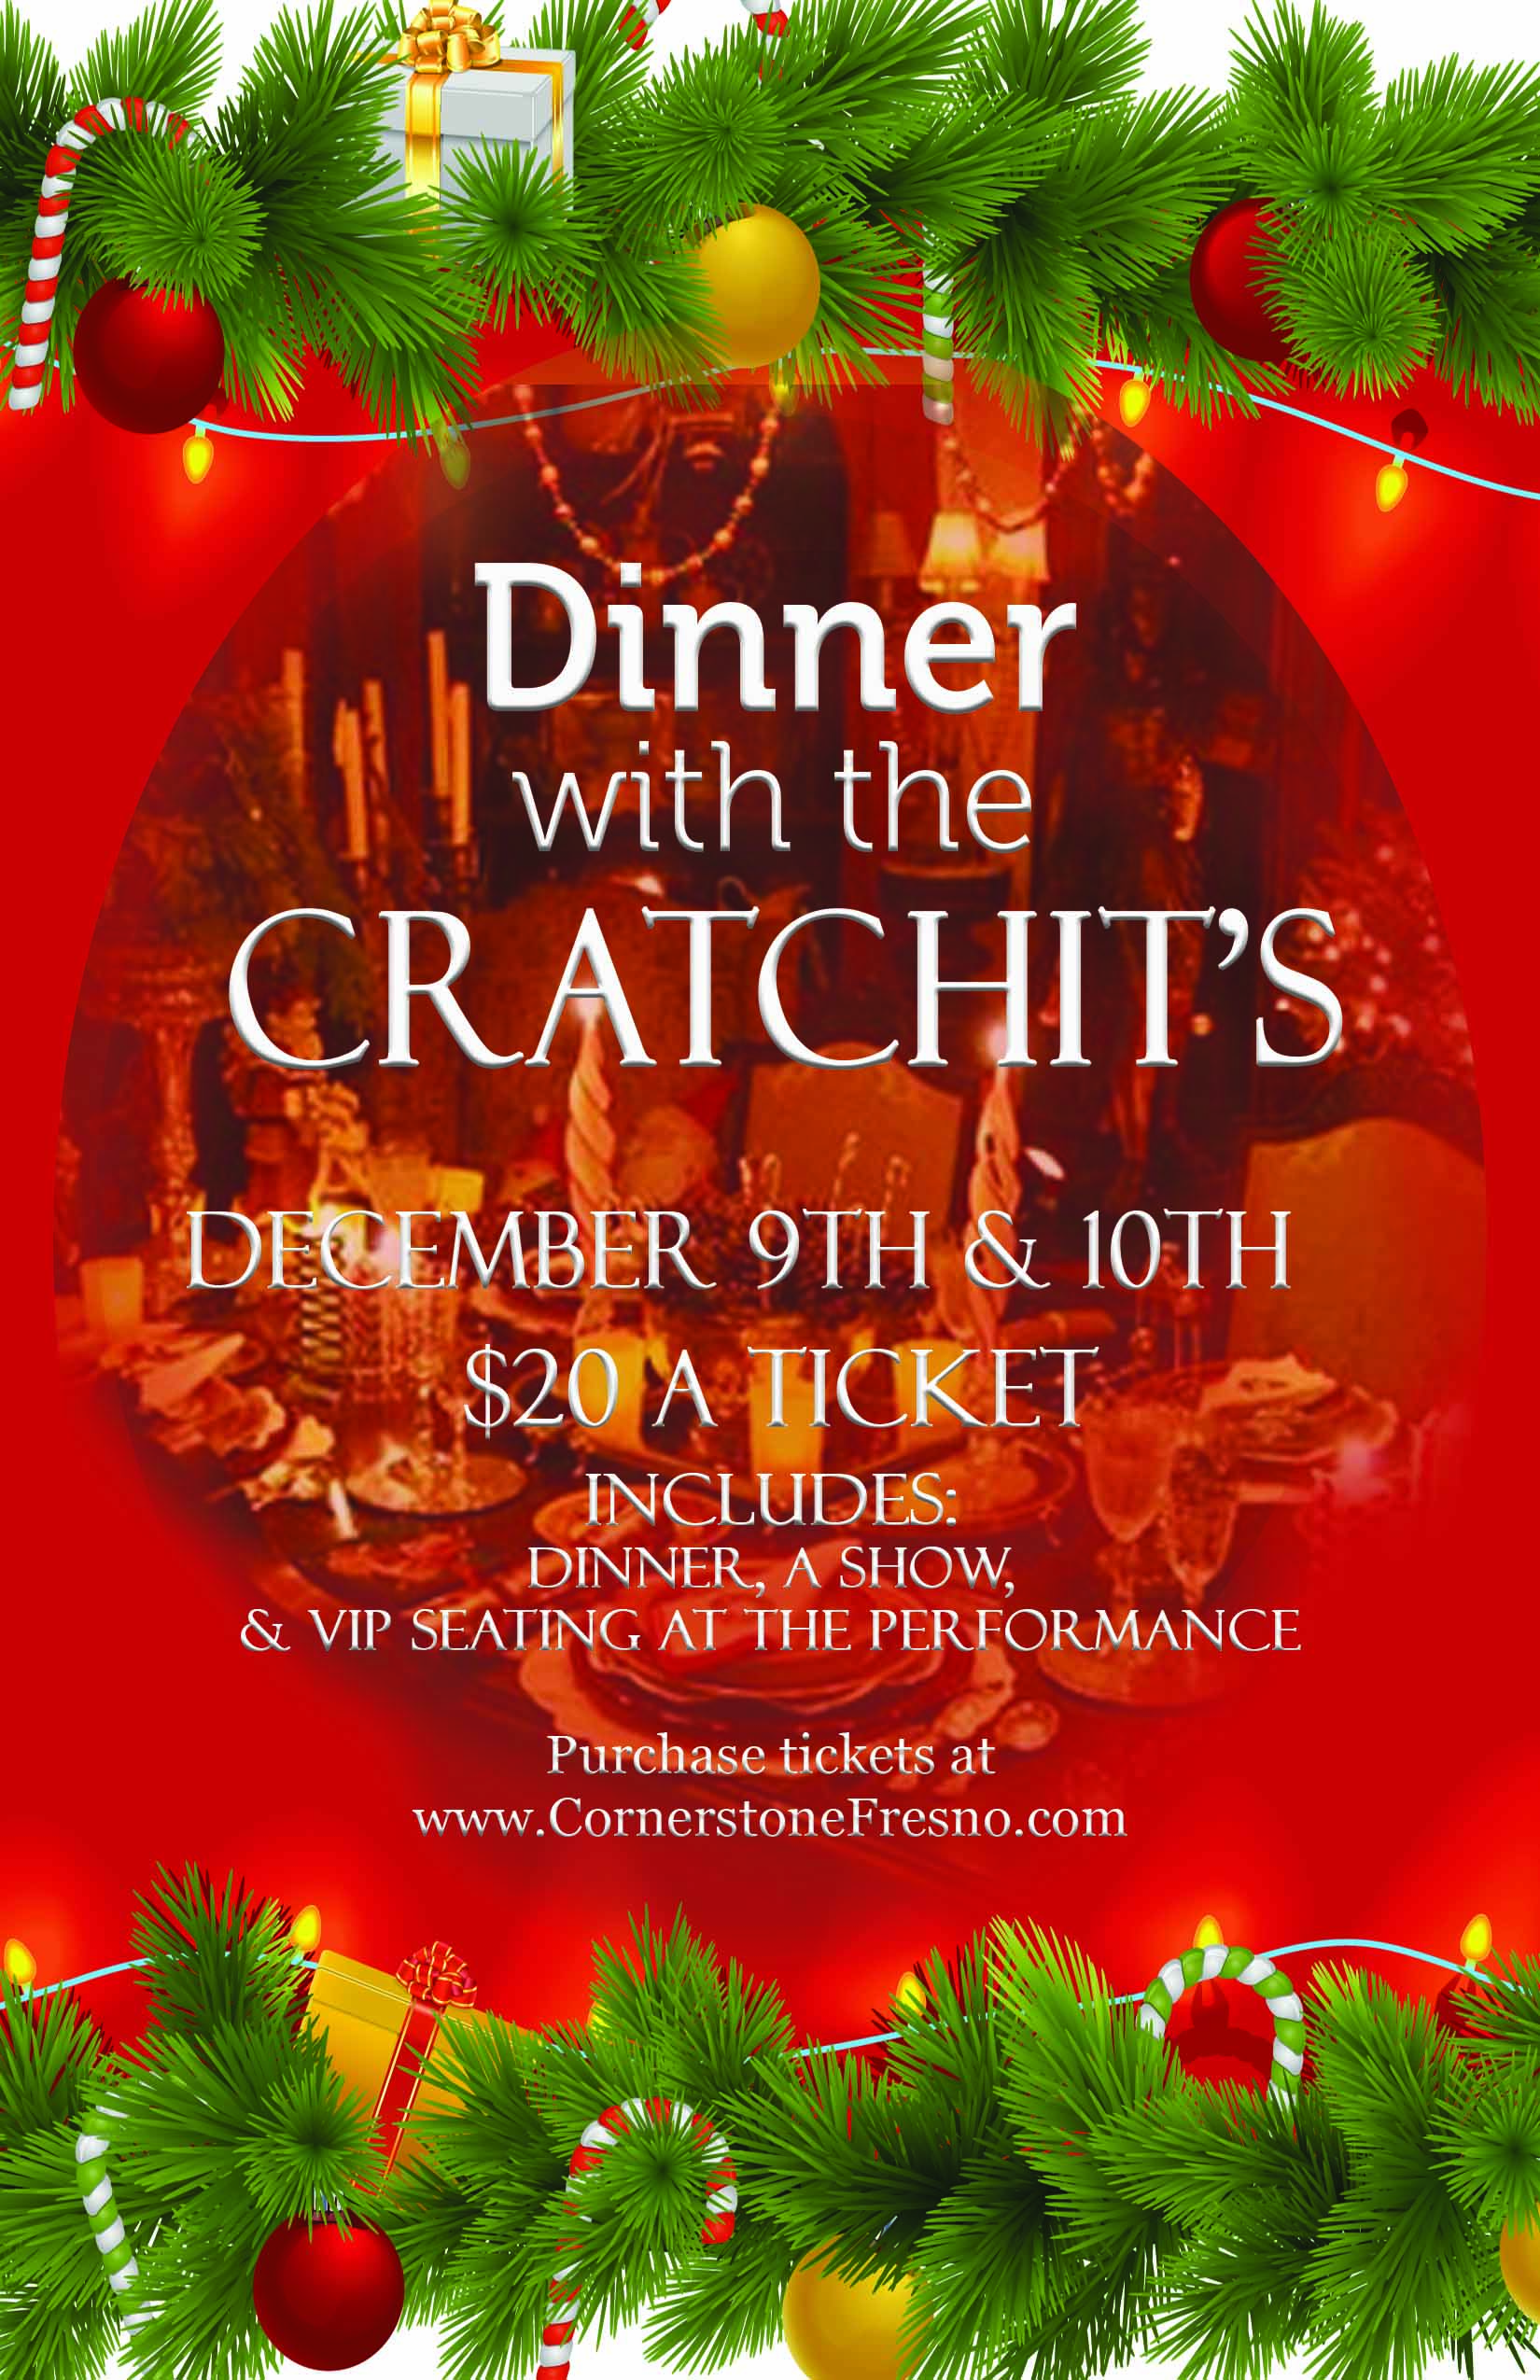 Dinner with the Cratchit's